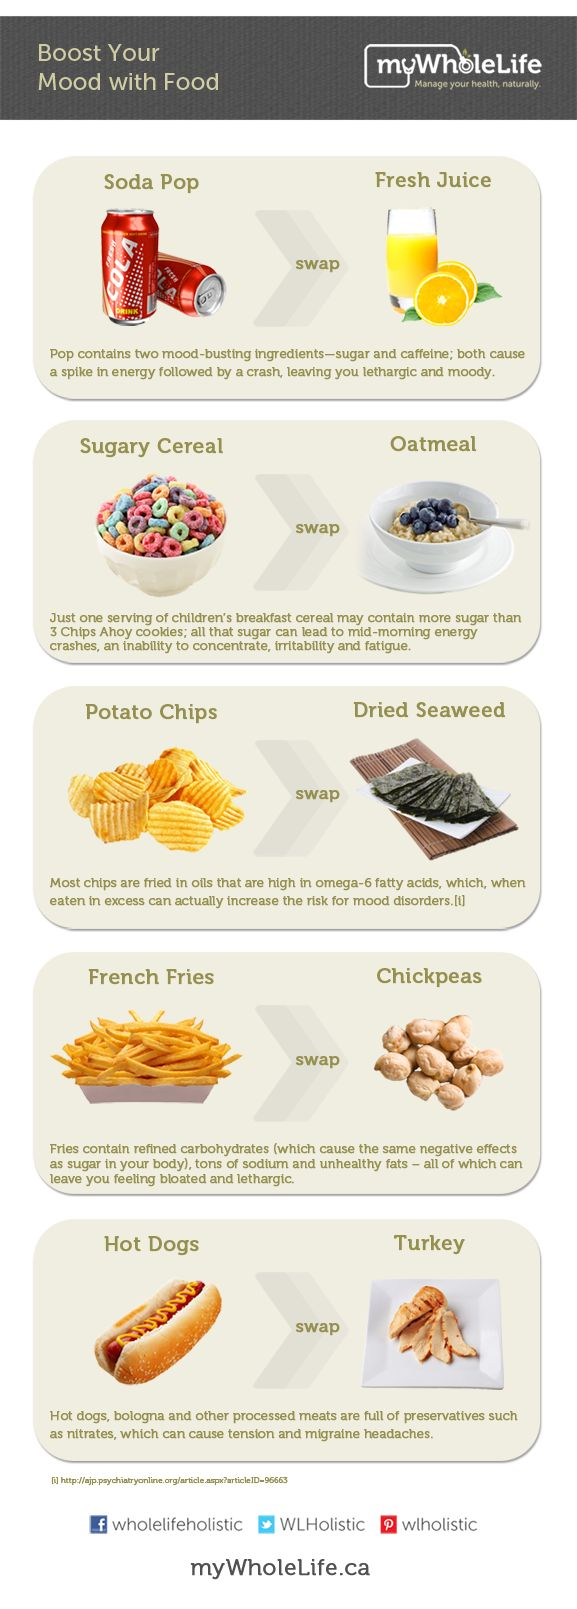 You are what you eat: many foods that are staples in a #teenager's diet can negatively impact their #health AND their #mood. With this in mind, we have provided a list of mood sabotaging foods and healthy food swap ideas for both you and your #teens. - See more http://www.mywholelife.ca/boost-mood-food/